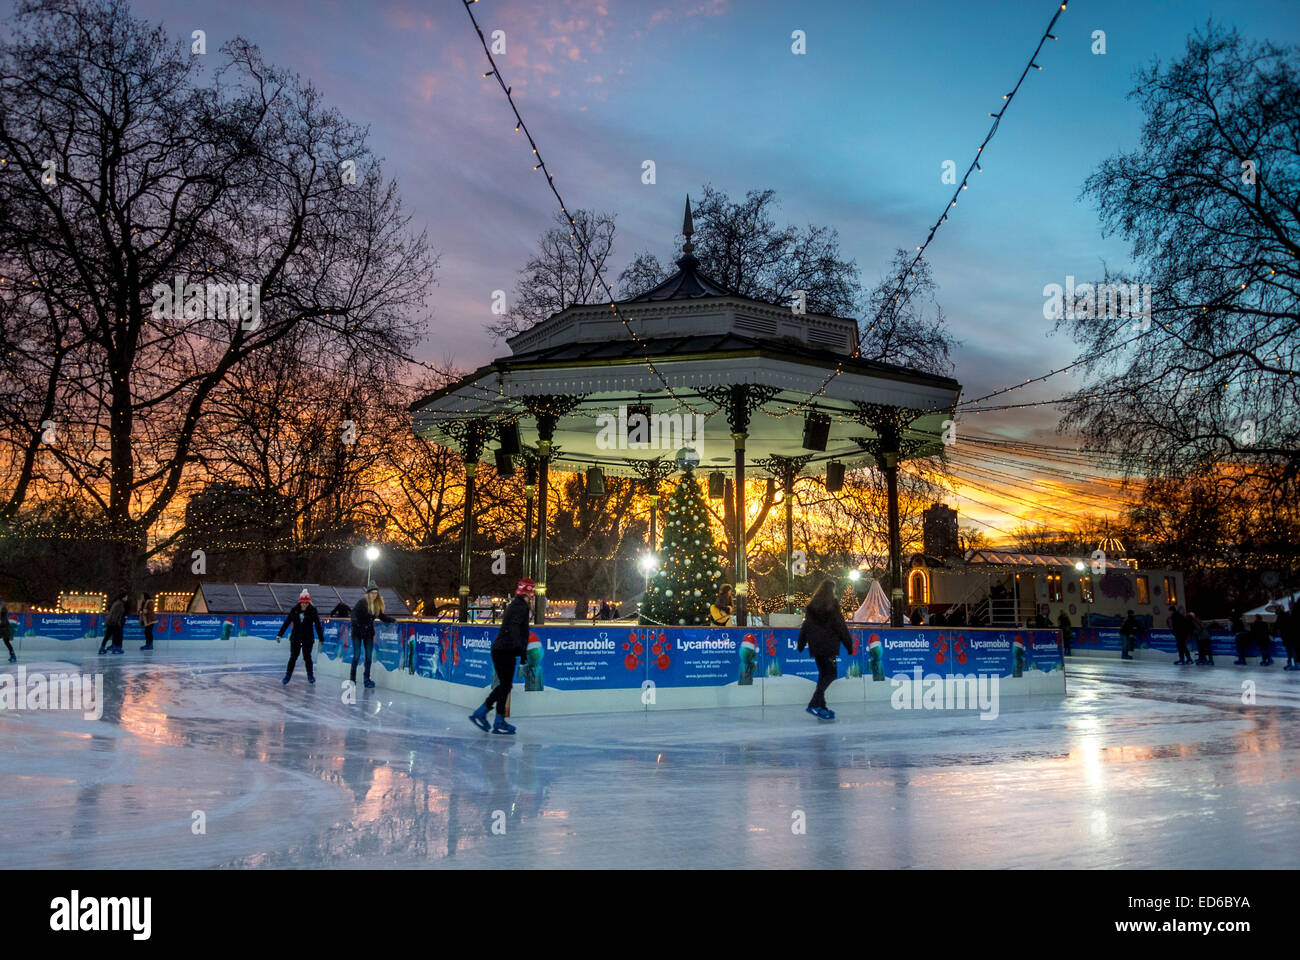 Skaters on ice rink around bandstand in Hyde Park at Winter Wonderland - Stock Image